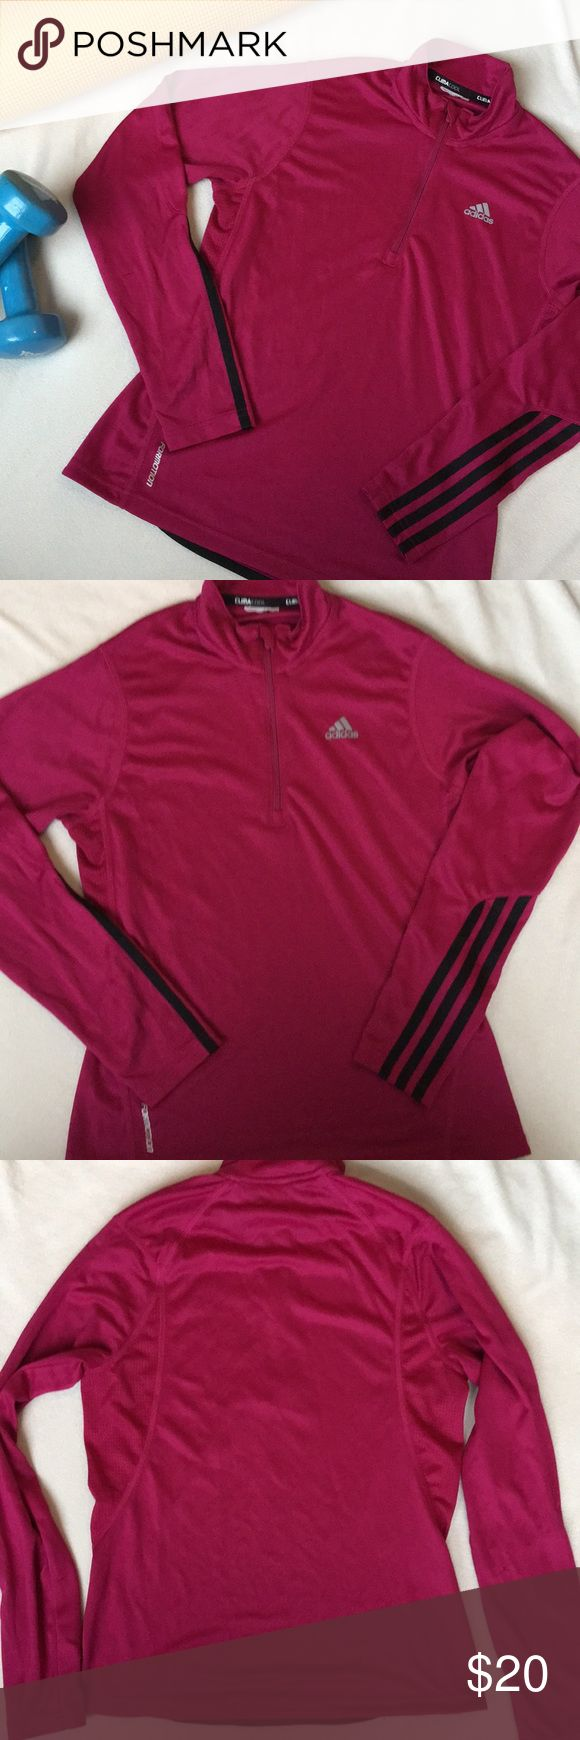 "Adidas Response Climacool Pull Over Adidas Response Formotion Climacool Half Zip Pull Over. Raspberry and Black. Size XS. Tags Removed. Flat lay measurements, armpit to armpit 17"". Shoulder to hem 22"". All measurements are approximate. A could small snags on lower arms. Pictures listed. adidas Tops"